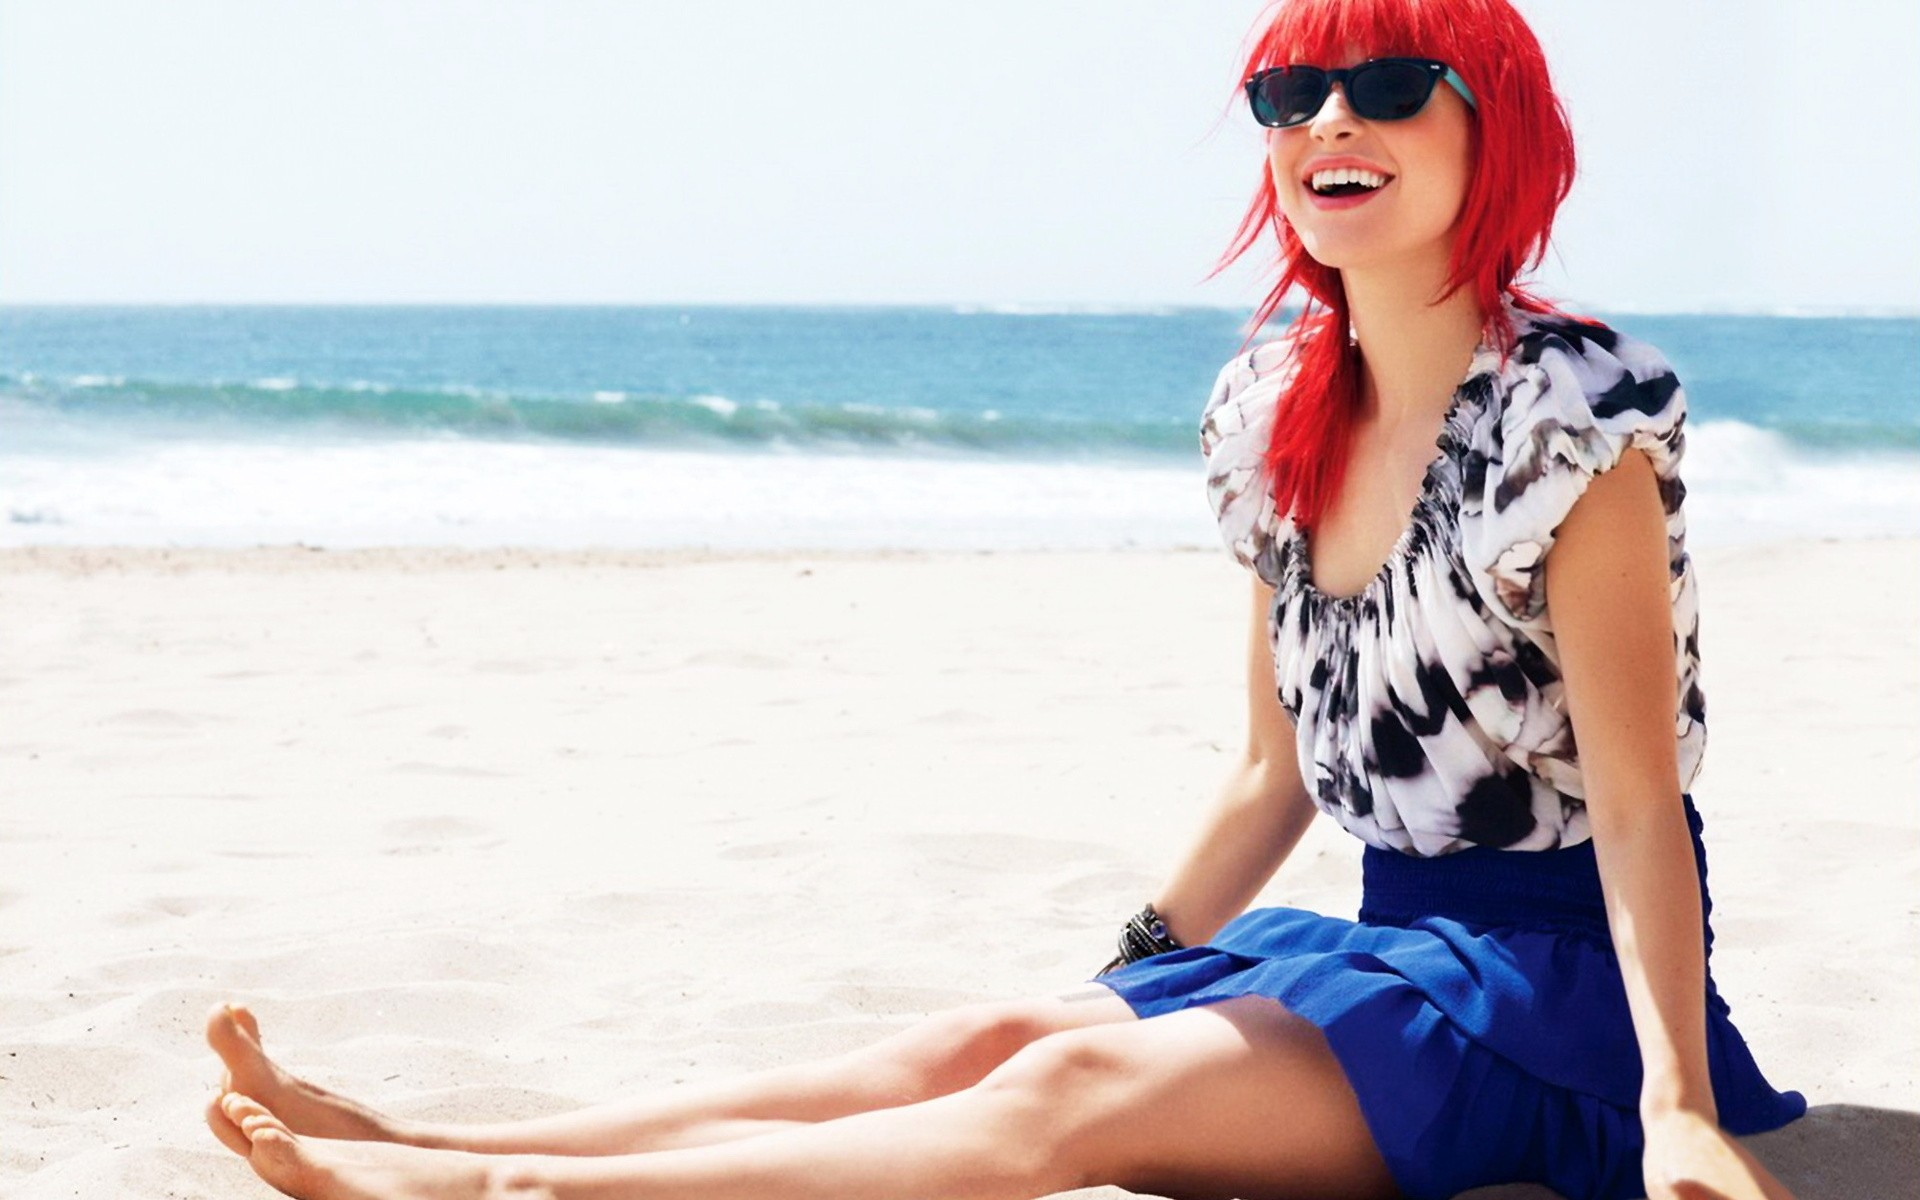 Hayley Williams Wallpaper 1920x1200 Hayley Williams Women Beach 1920x1200